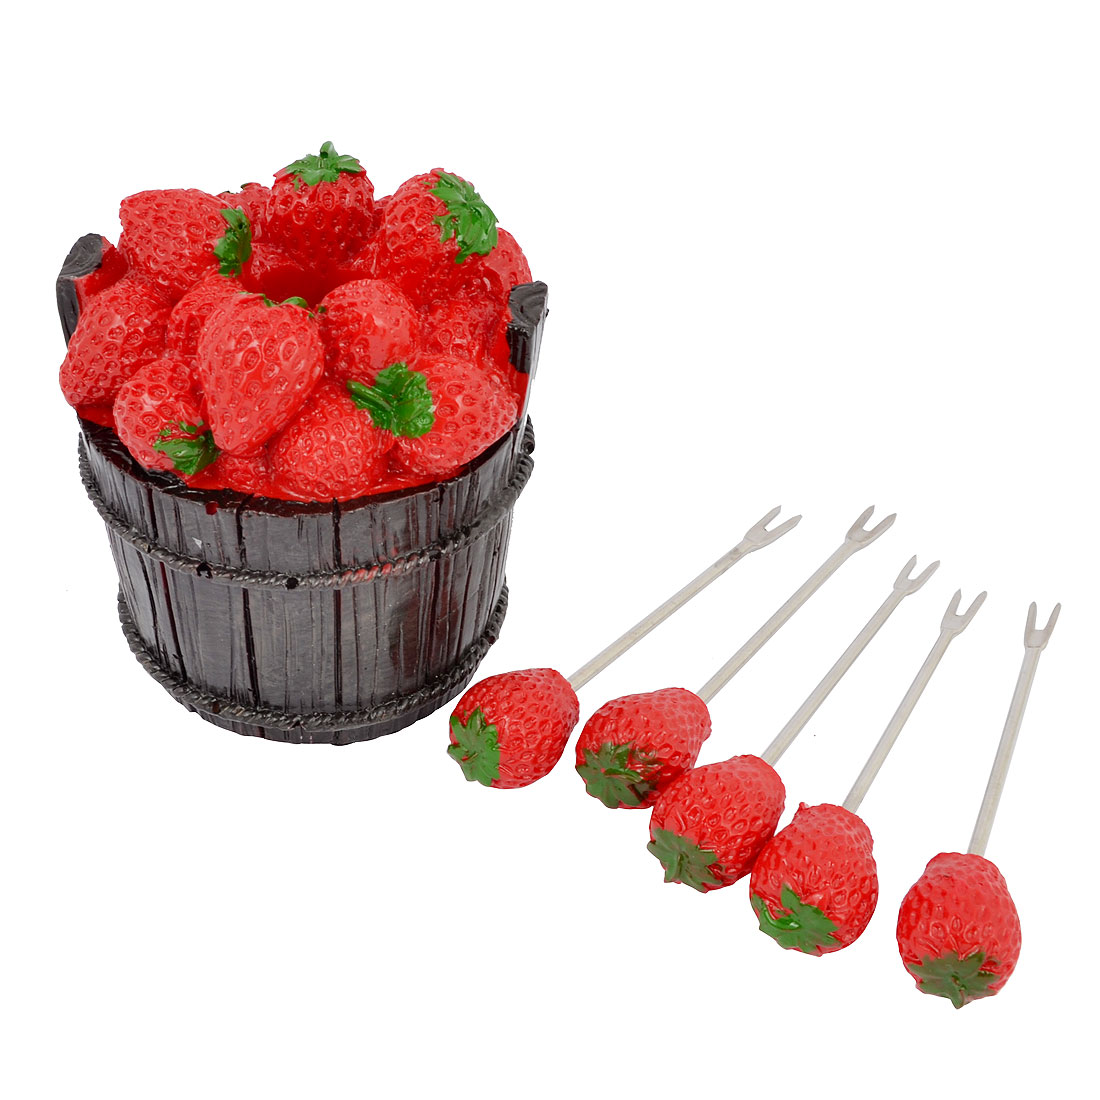 Dark Brown Bucket Shaped Holder Red Ceramic Strawberry Decor Fruit 5-Forks Set Tool